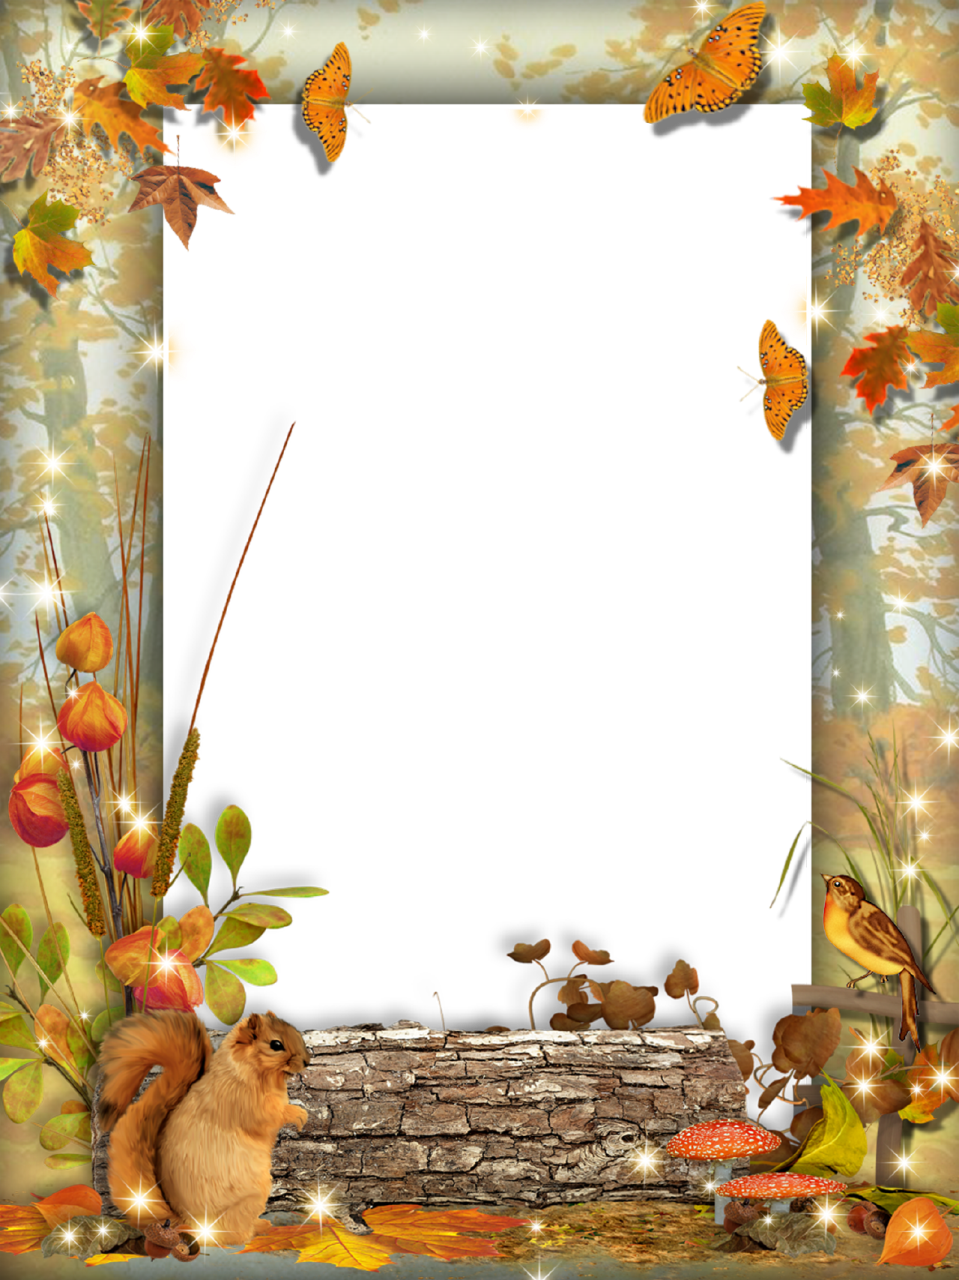 Fall frame png. Autumn photo squirrel in